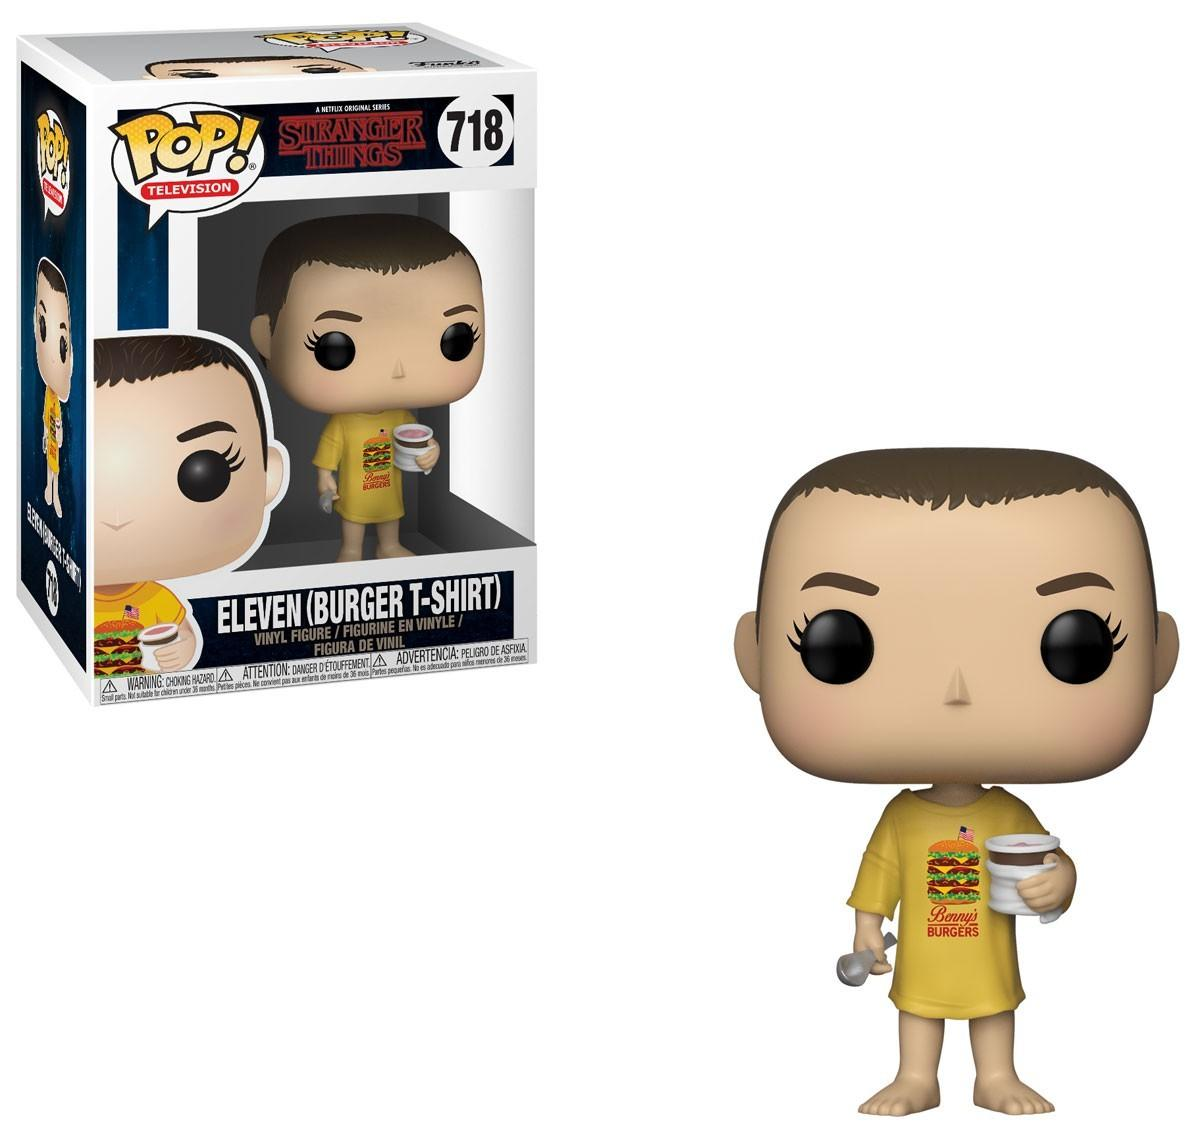 POP! Movies: Stranger Things - Eleven burger t-shirt (718) Vinyl Figure